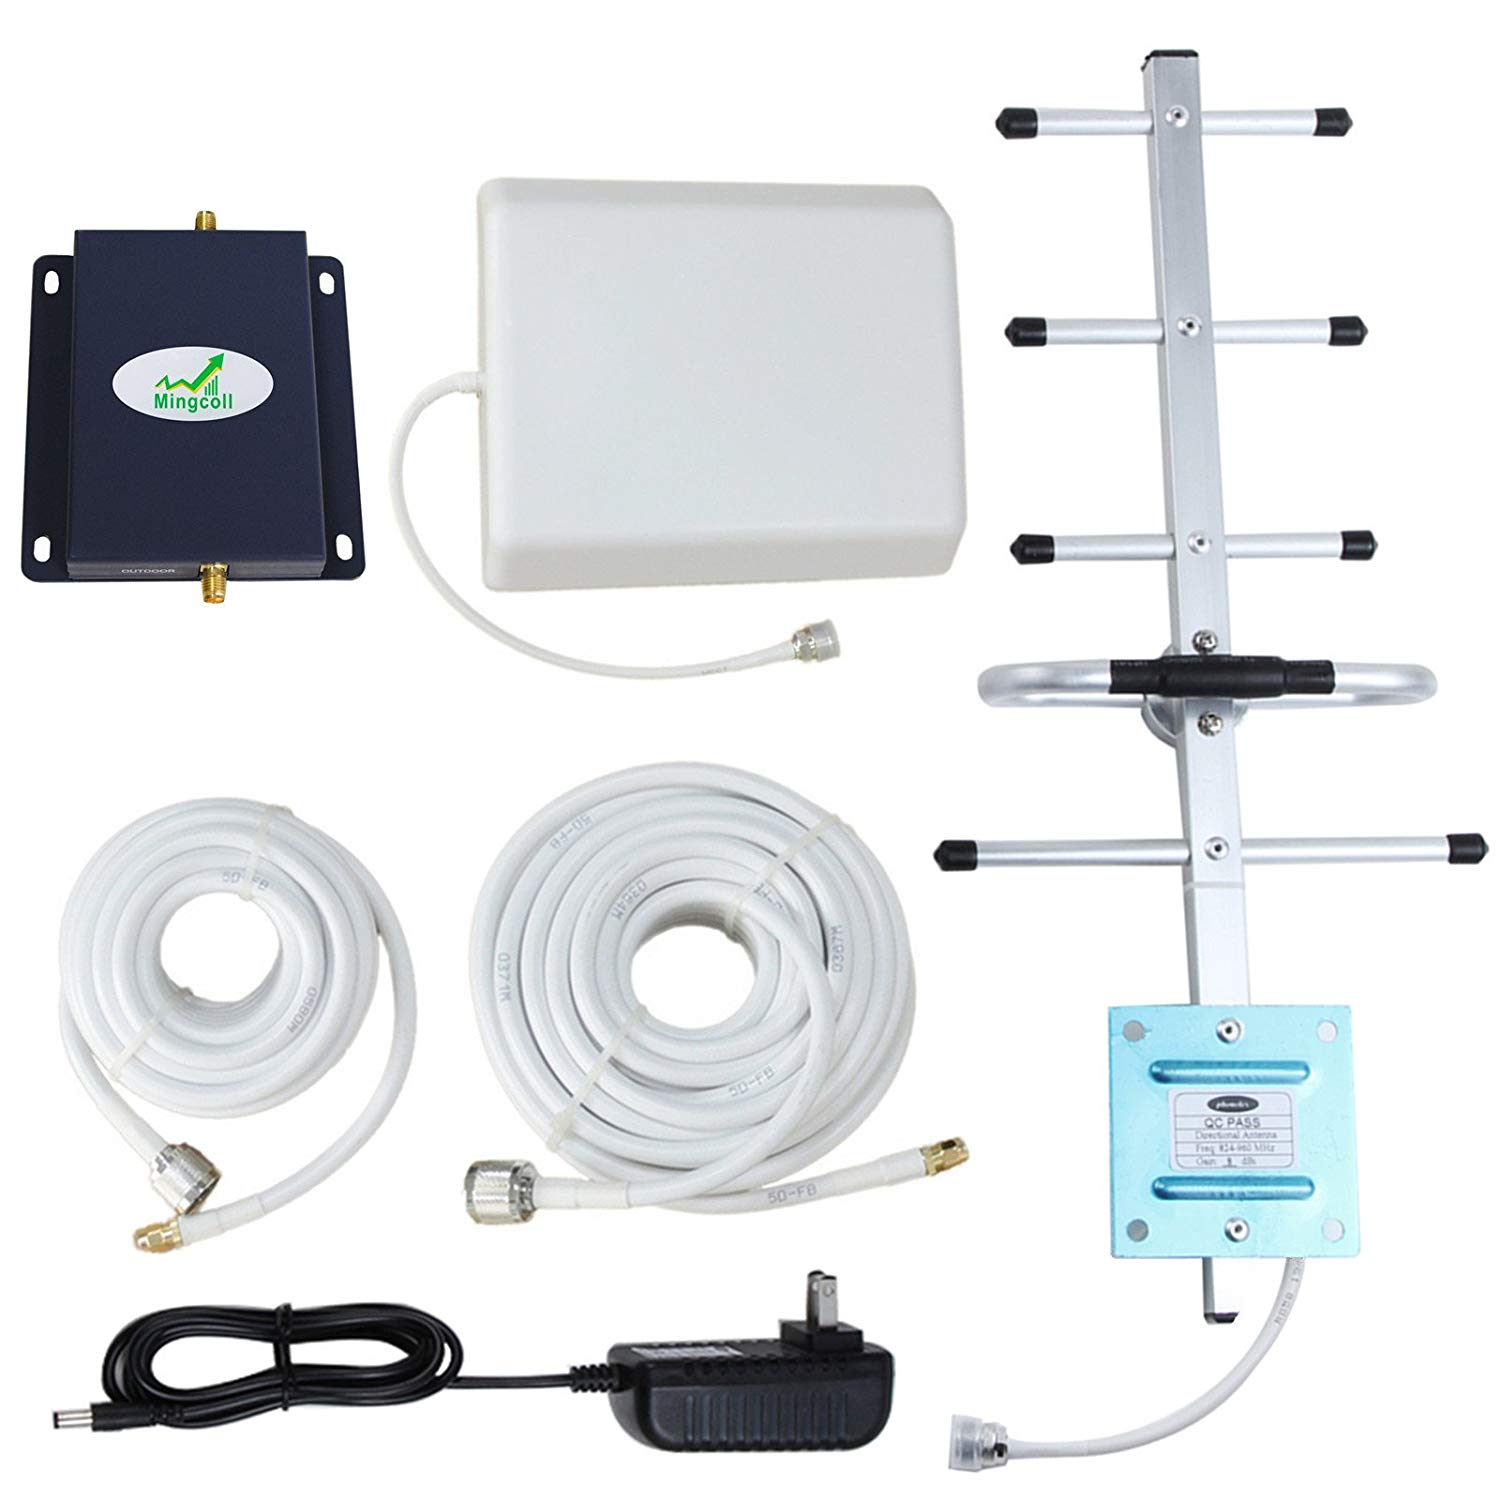 Mingcoll Verizon Mobile Signal Booster 4G LTE 700MHz Band 13 Cell Signal Booster for Home Verizon